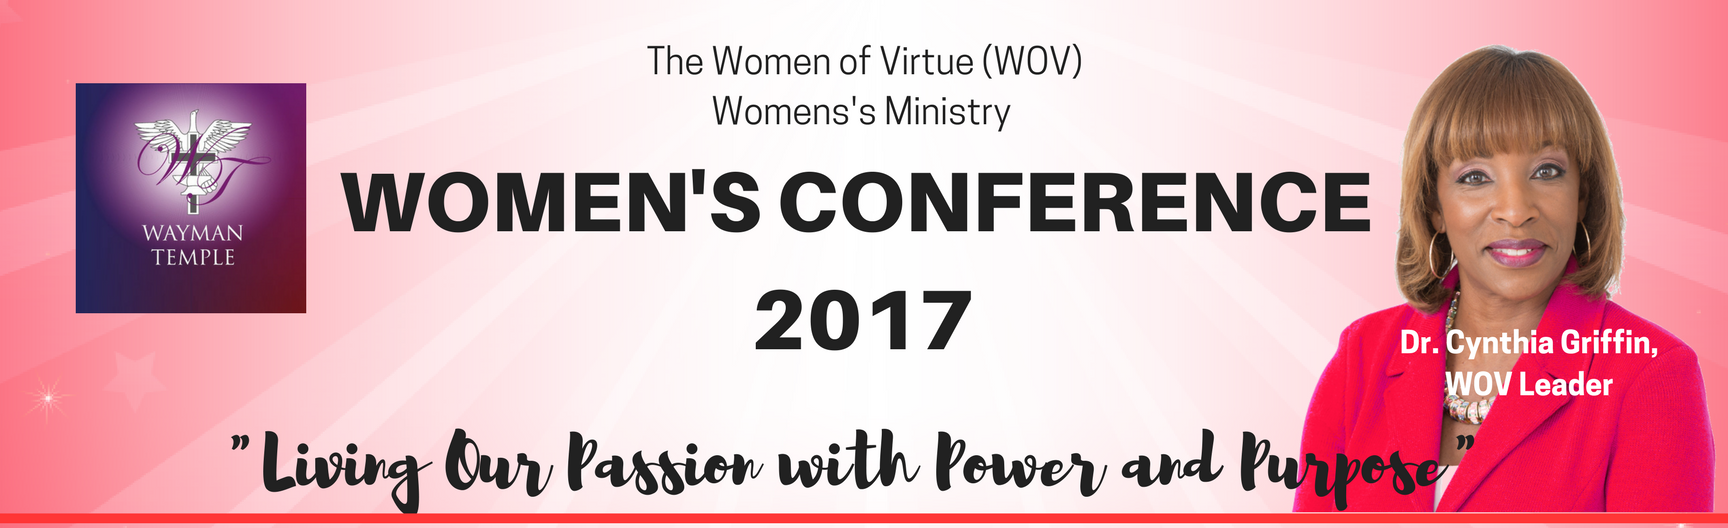 WOMEN'S CONFERENCE 2017 banner